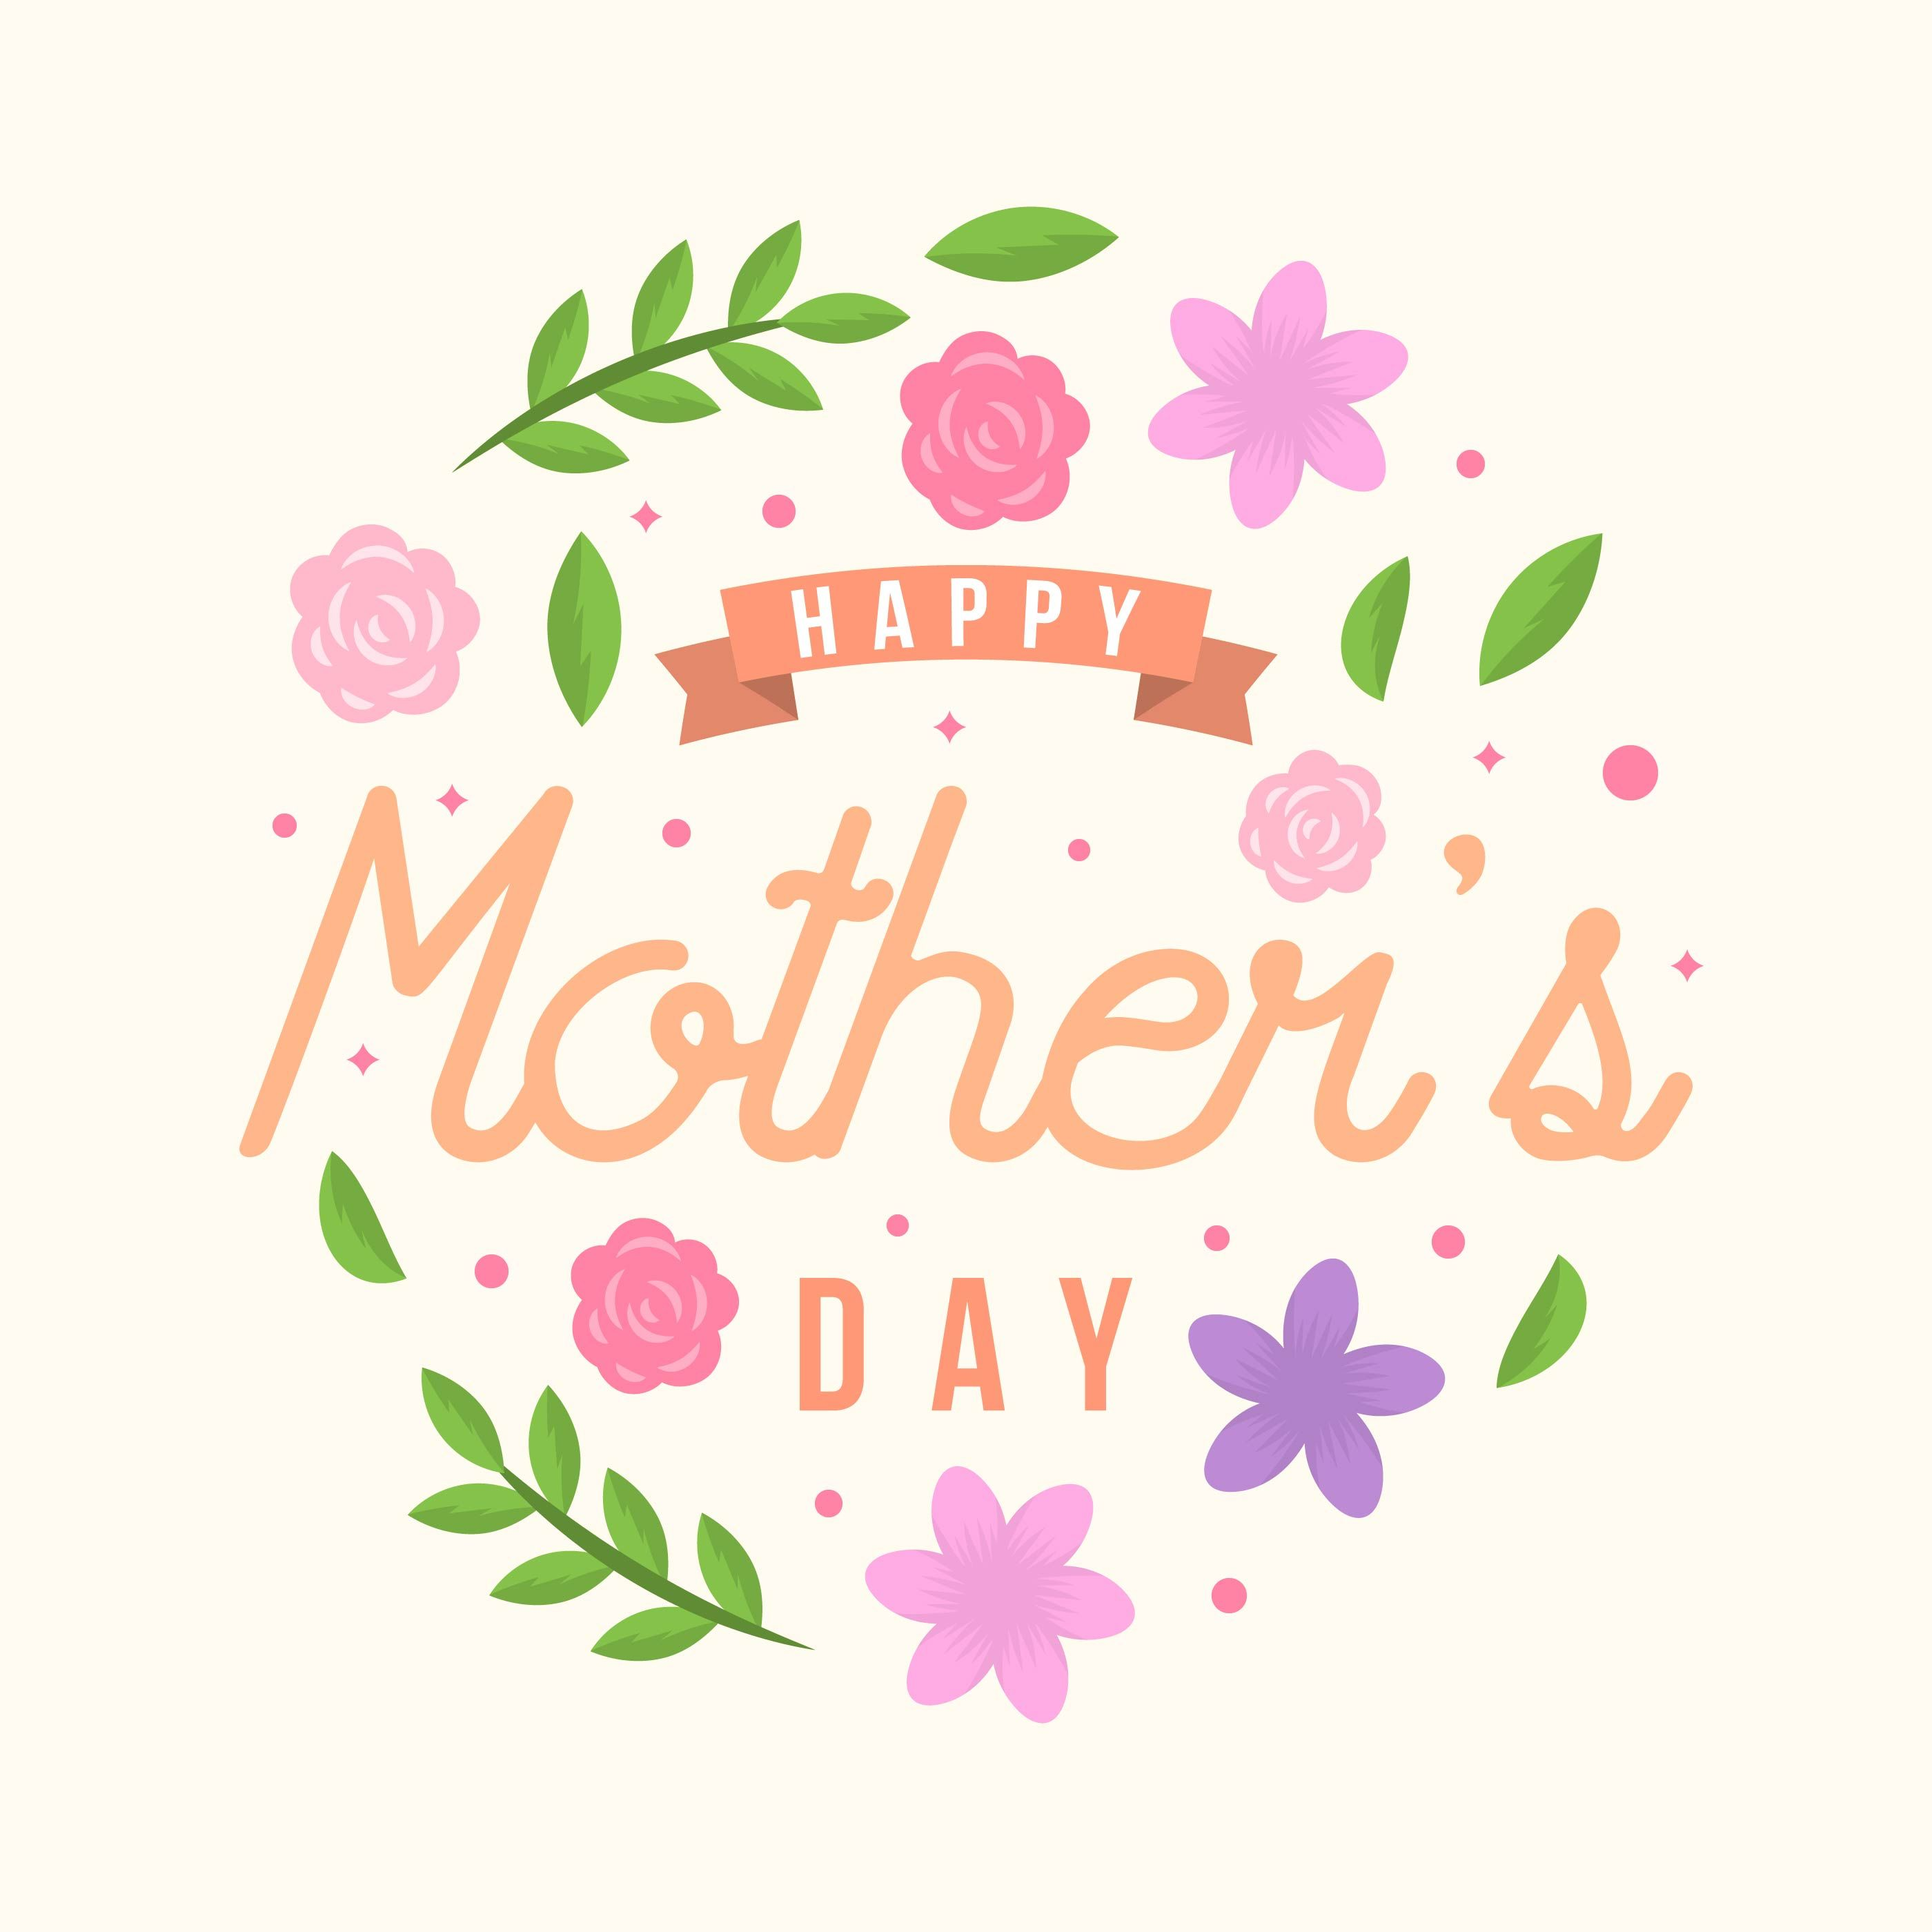 Flat Happy Mothers Day Card Vector Choose From Thousands Of Free Vectors Clip Art Designs I Happy Mother S Day Card Mothers Day Cards Mother S Day Gift Card